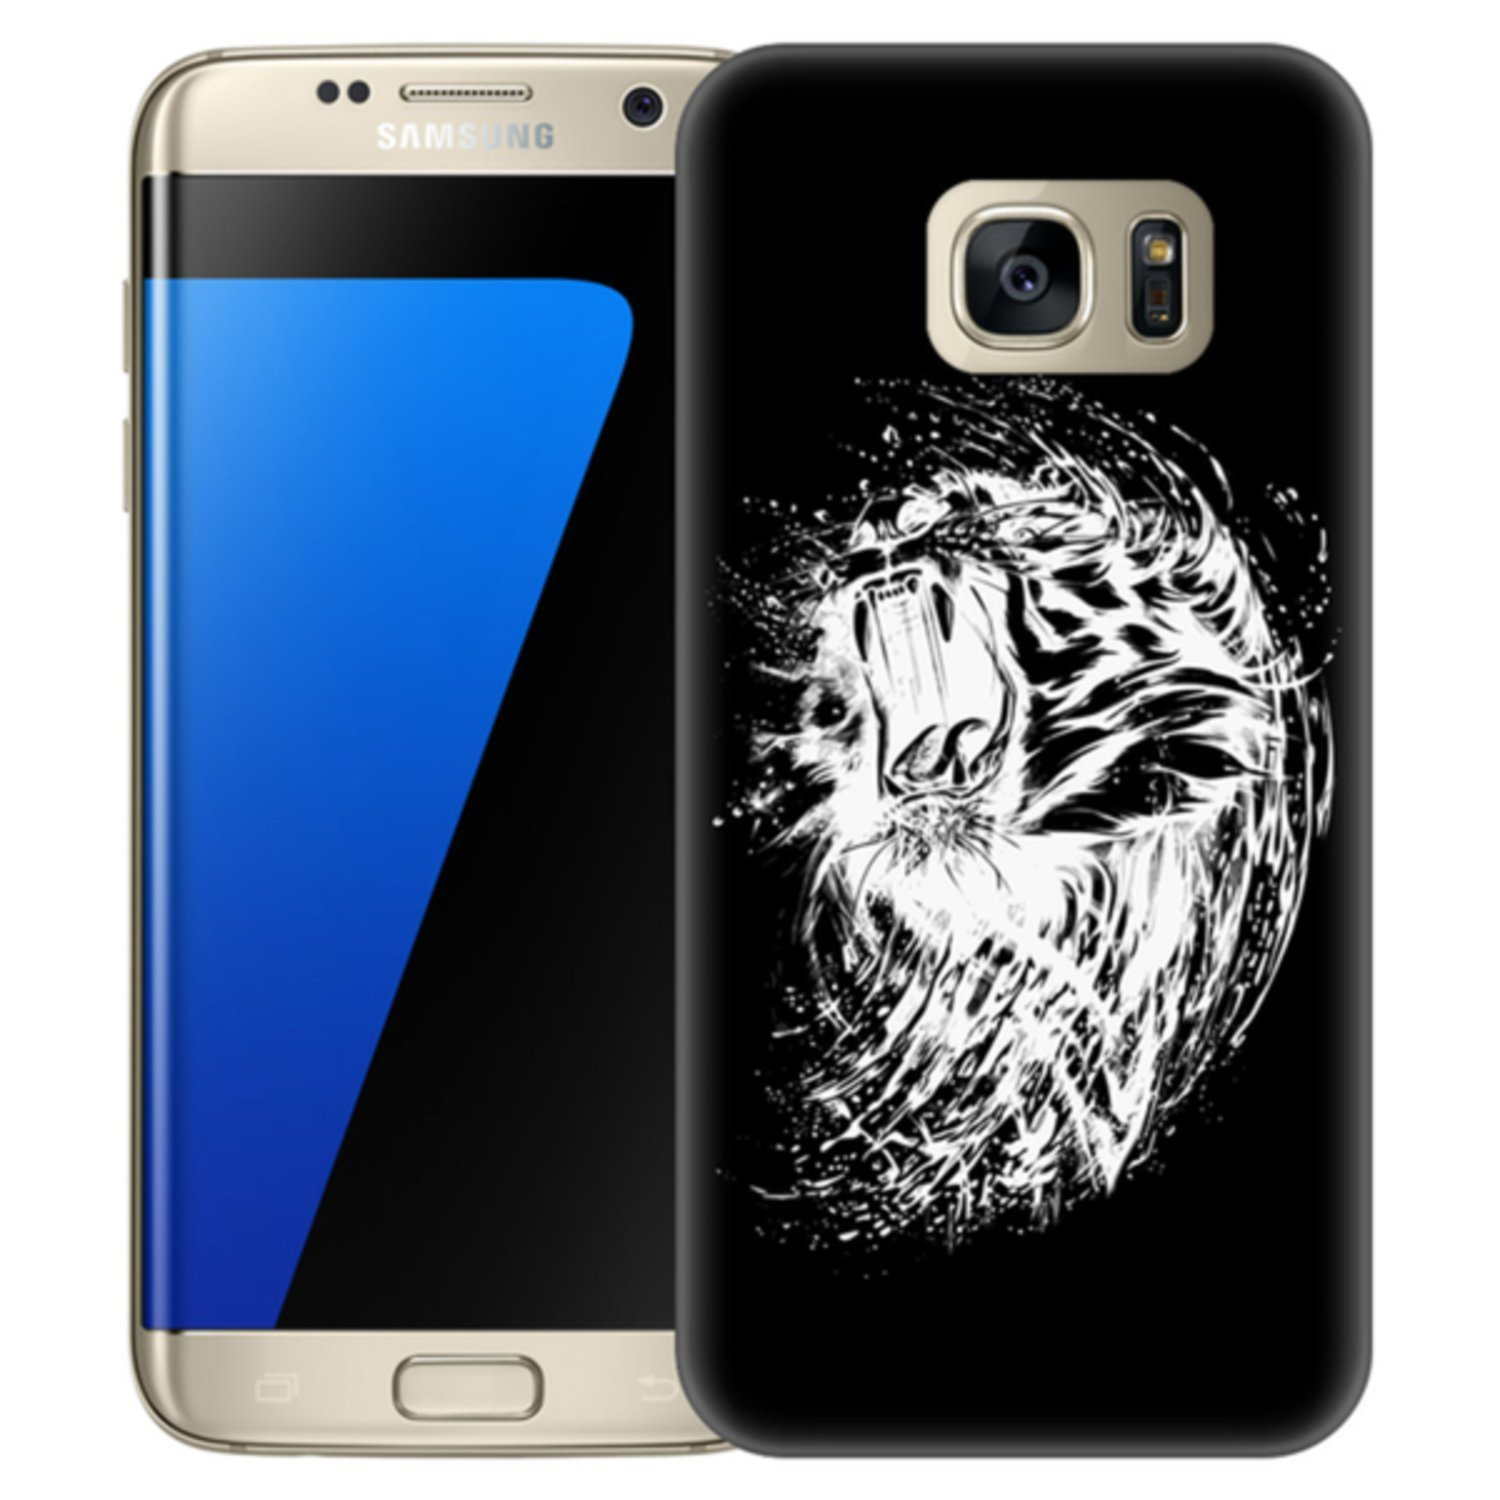 Samsung Galaxy S7 Edge Skal Screamin.. (309736905) ᐈ Hobbyprylar på ... 6ba77ec24cc97